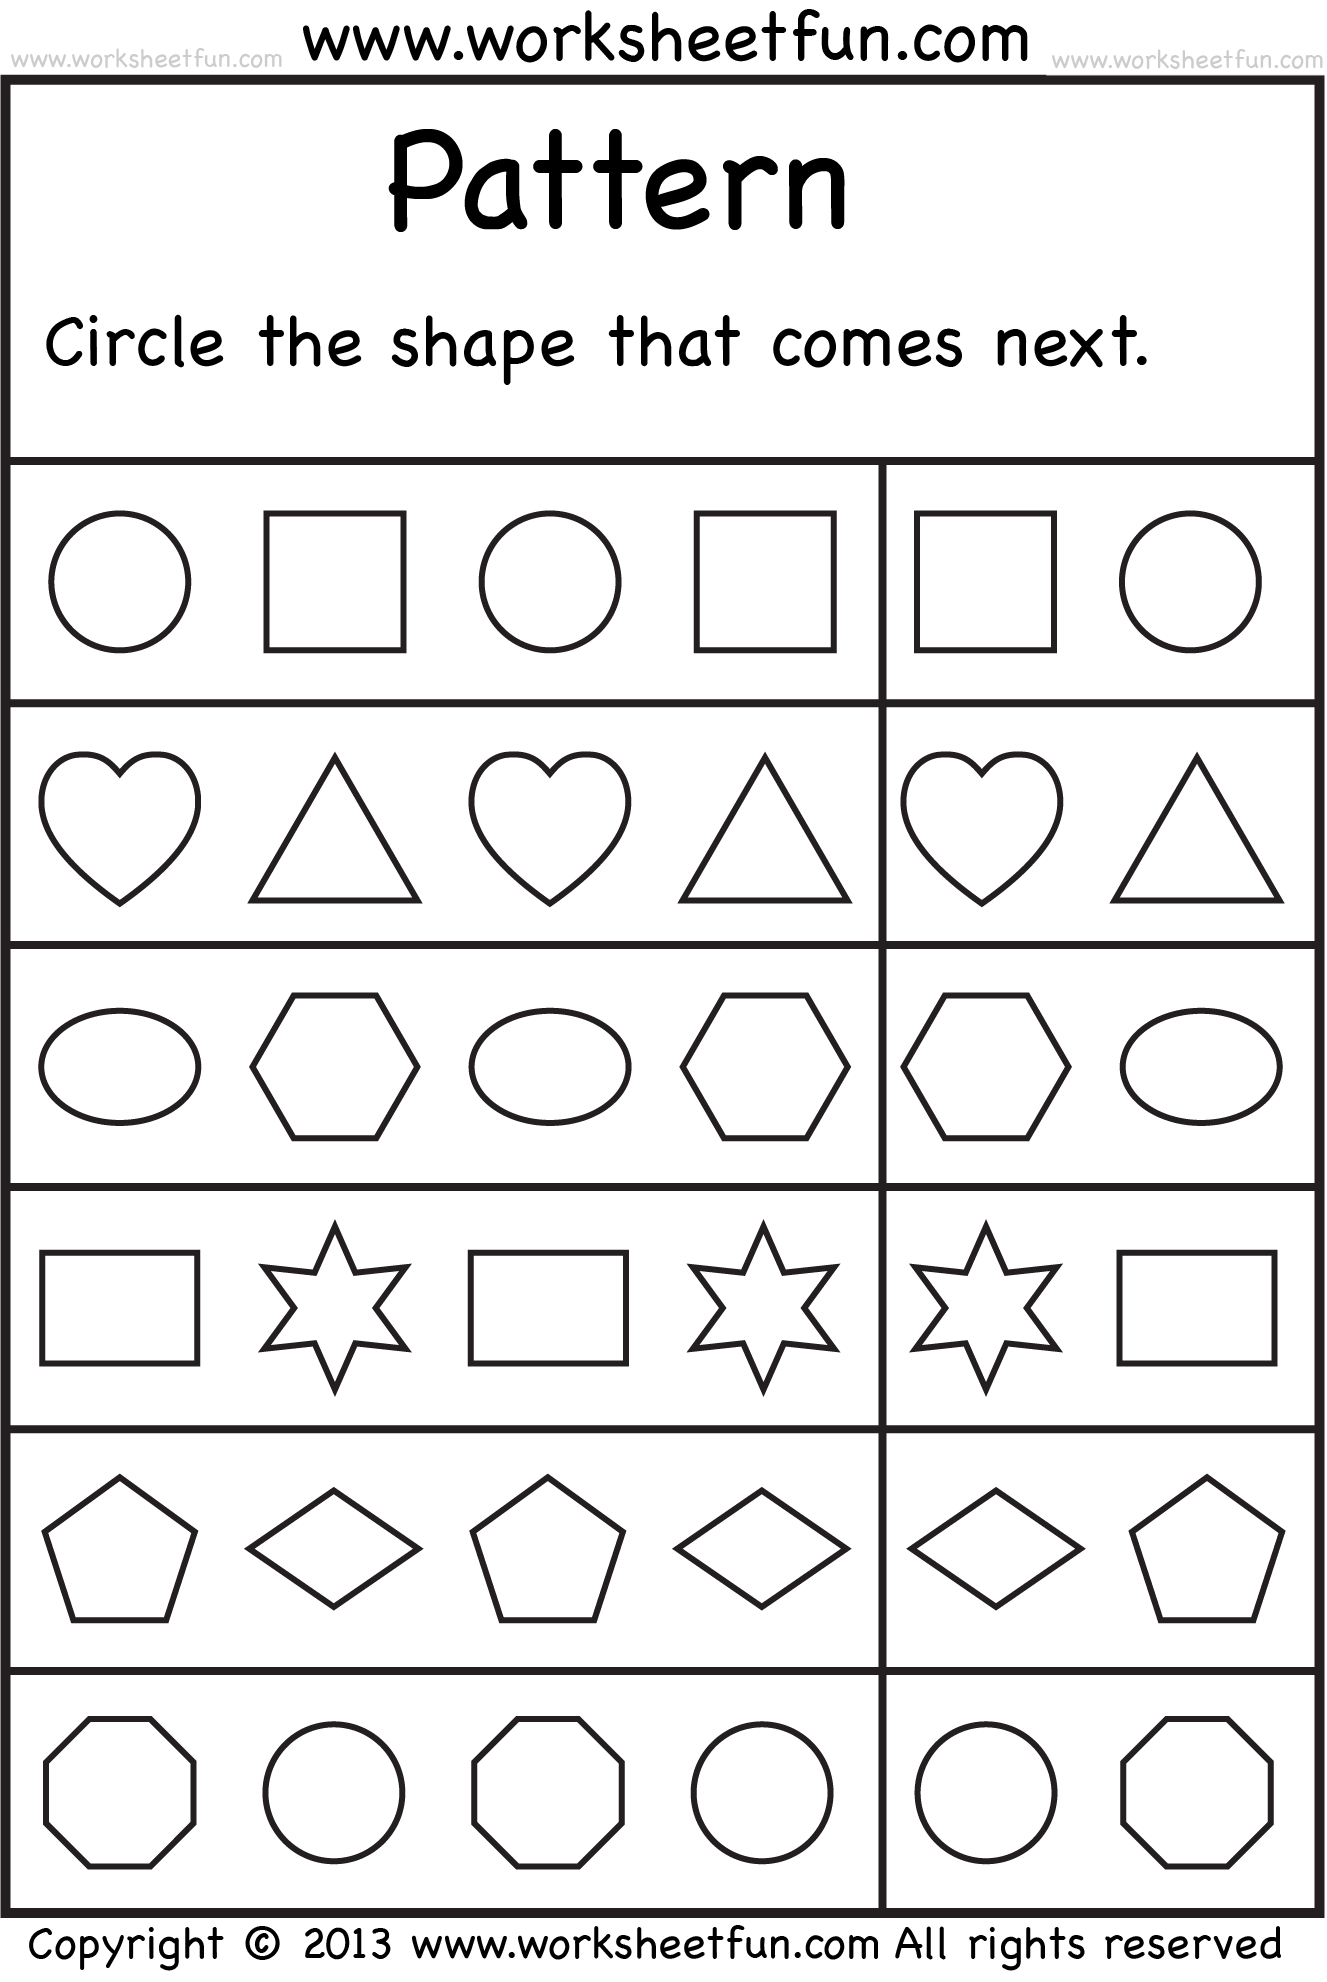 worksheet Kindergarten Printable Worksheets free printable worksheets worksheetfun craftsactvities and for preschooltoddler kindergarten printables activity pages lots of worksh